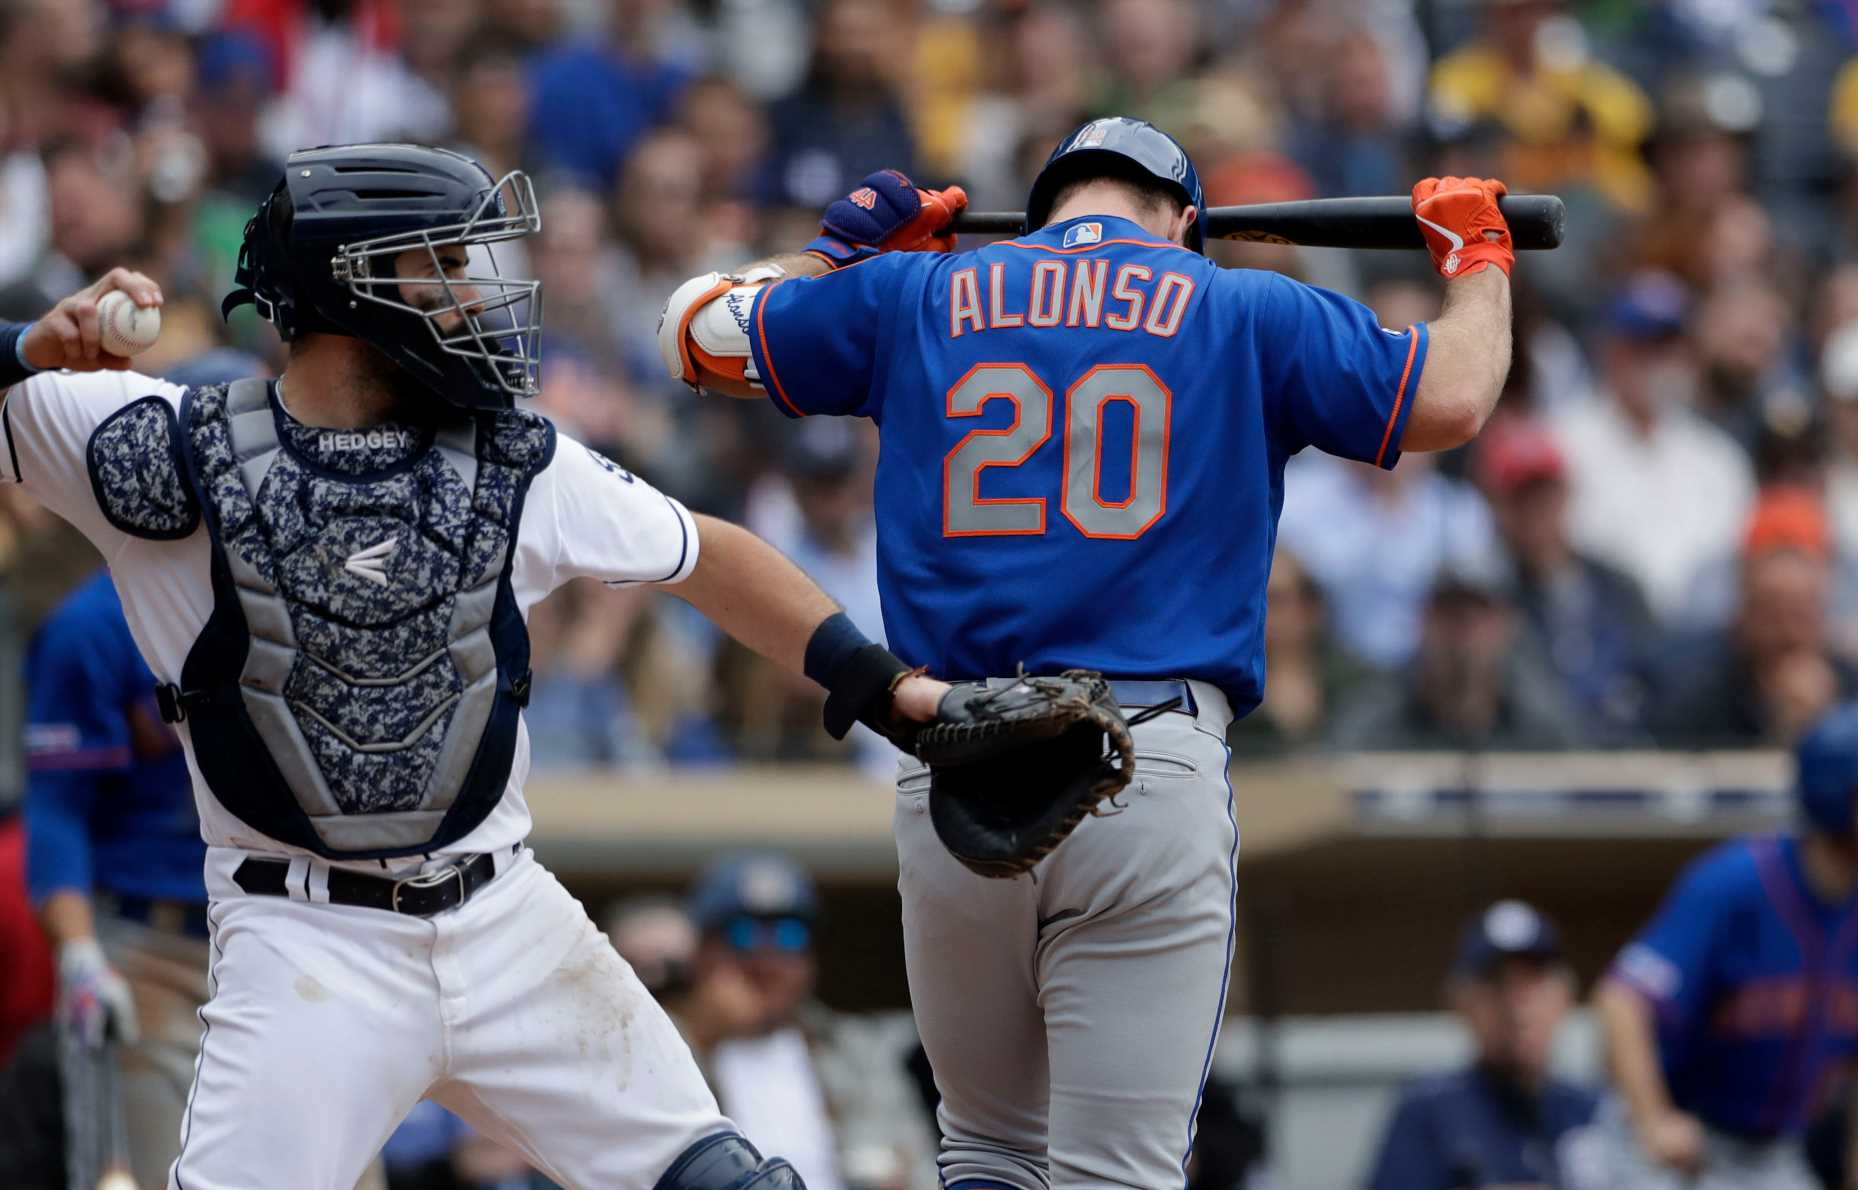 Mets' forgettable road trip ends with sad step backward